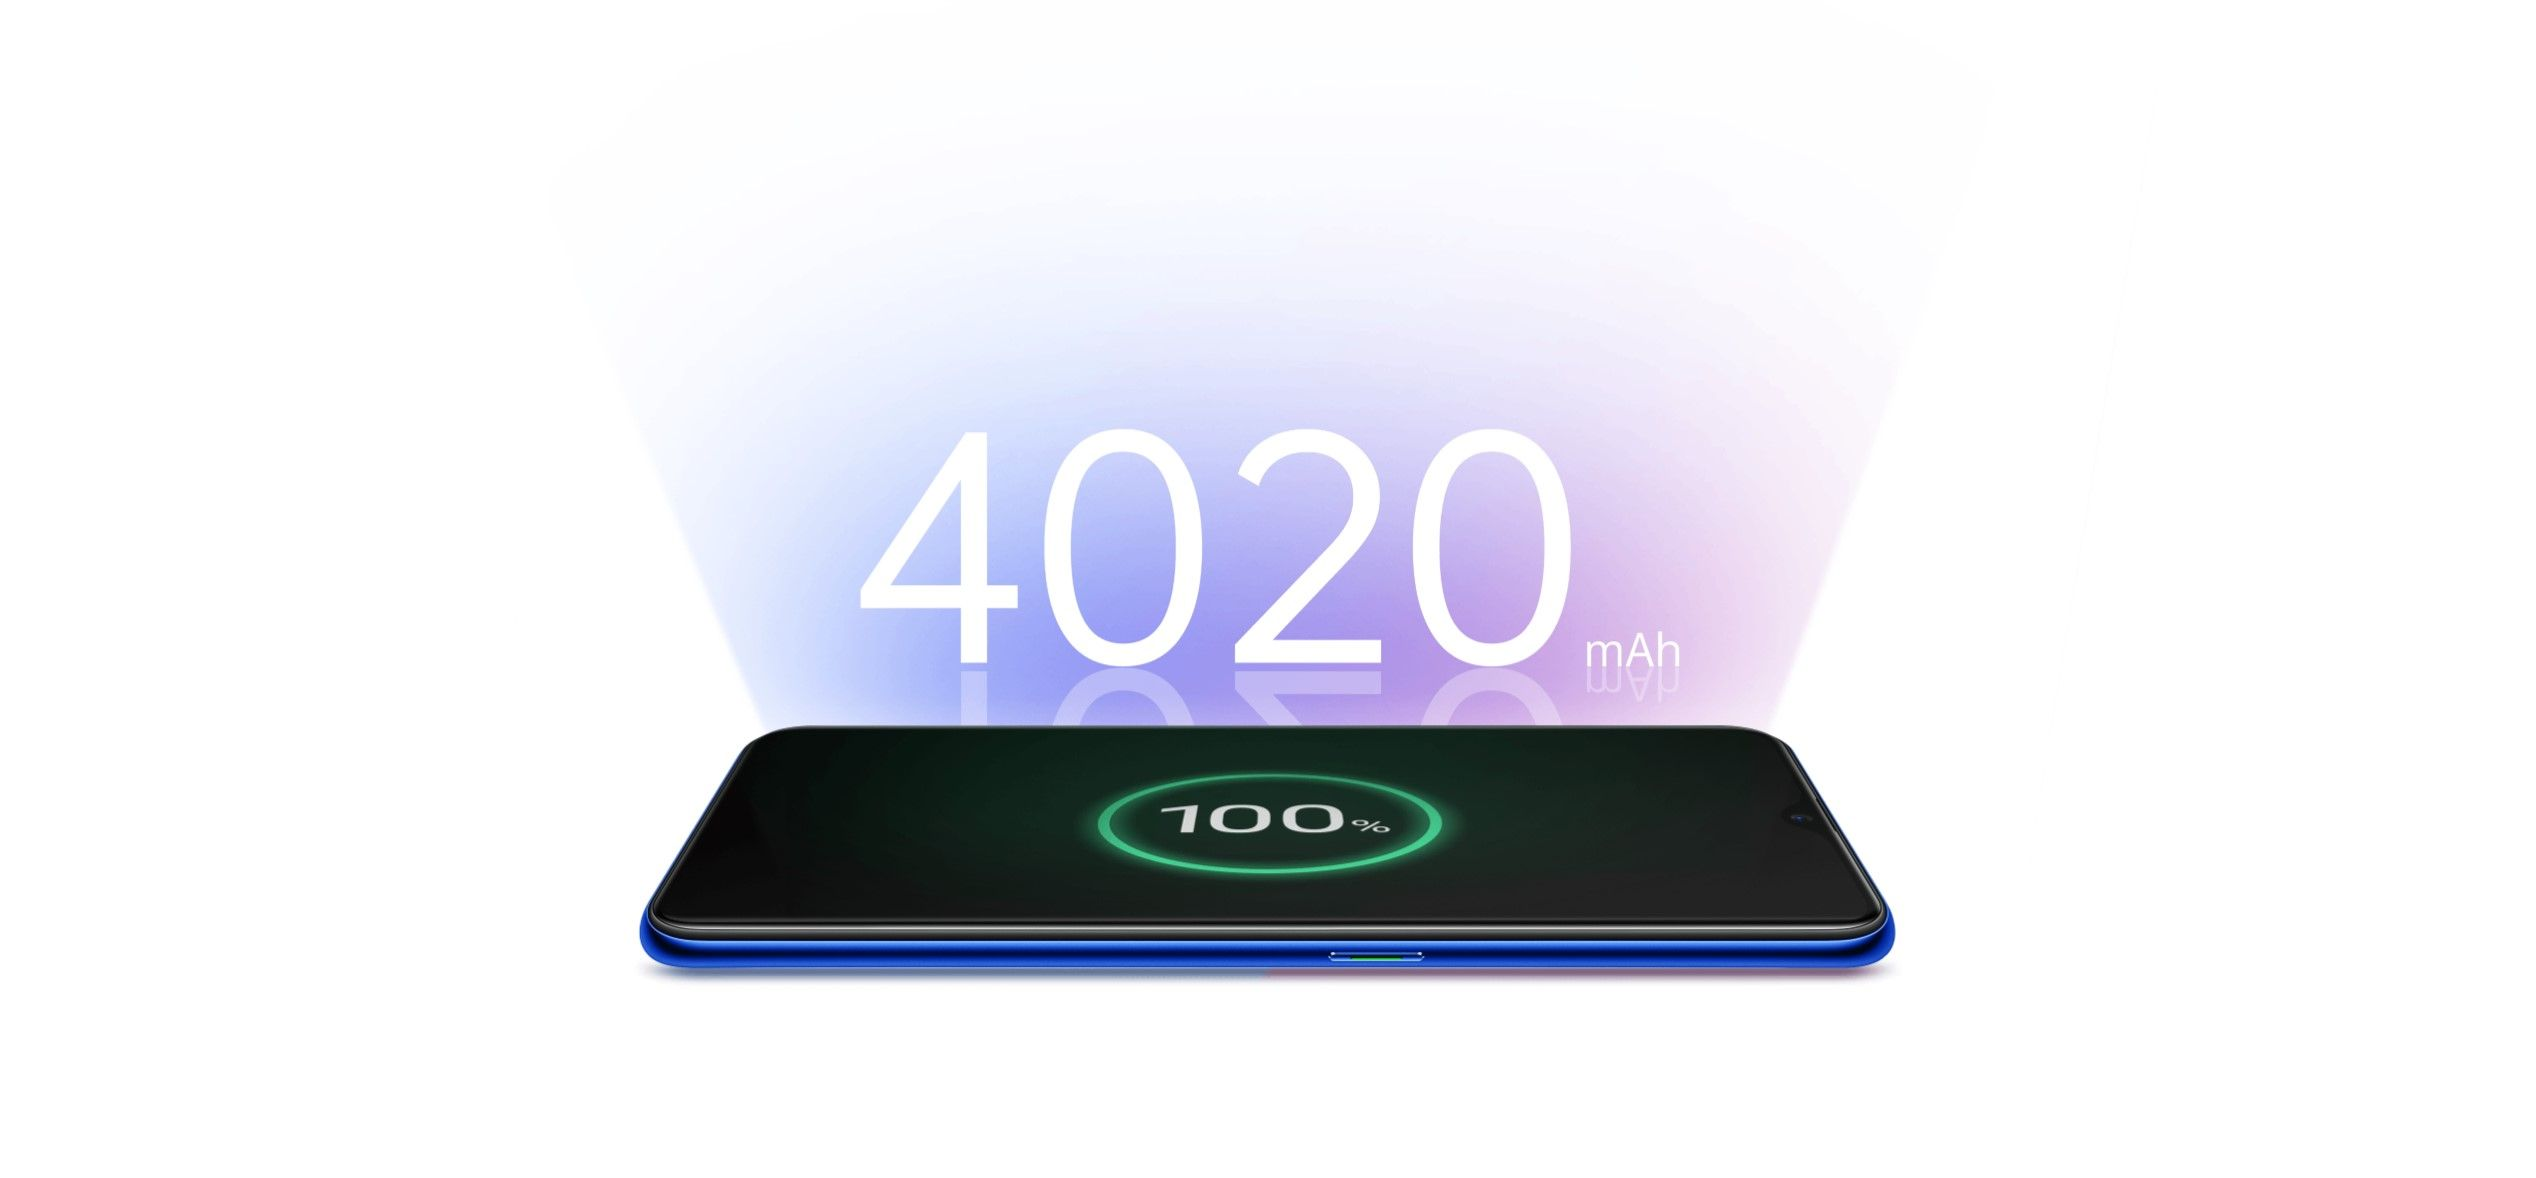 OPPO A9 4020mAh Battery